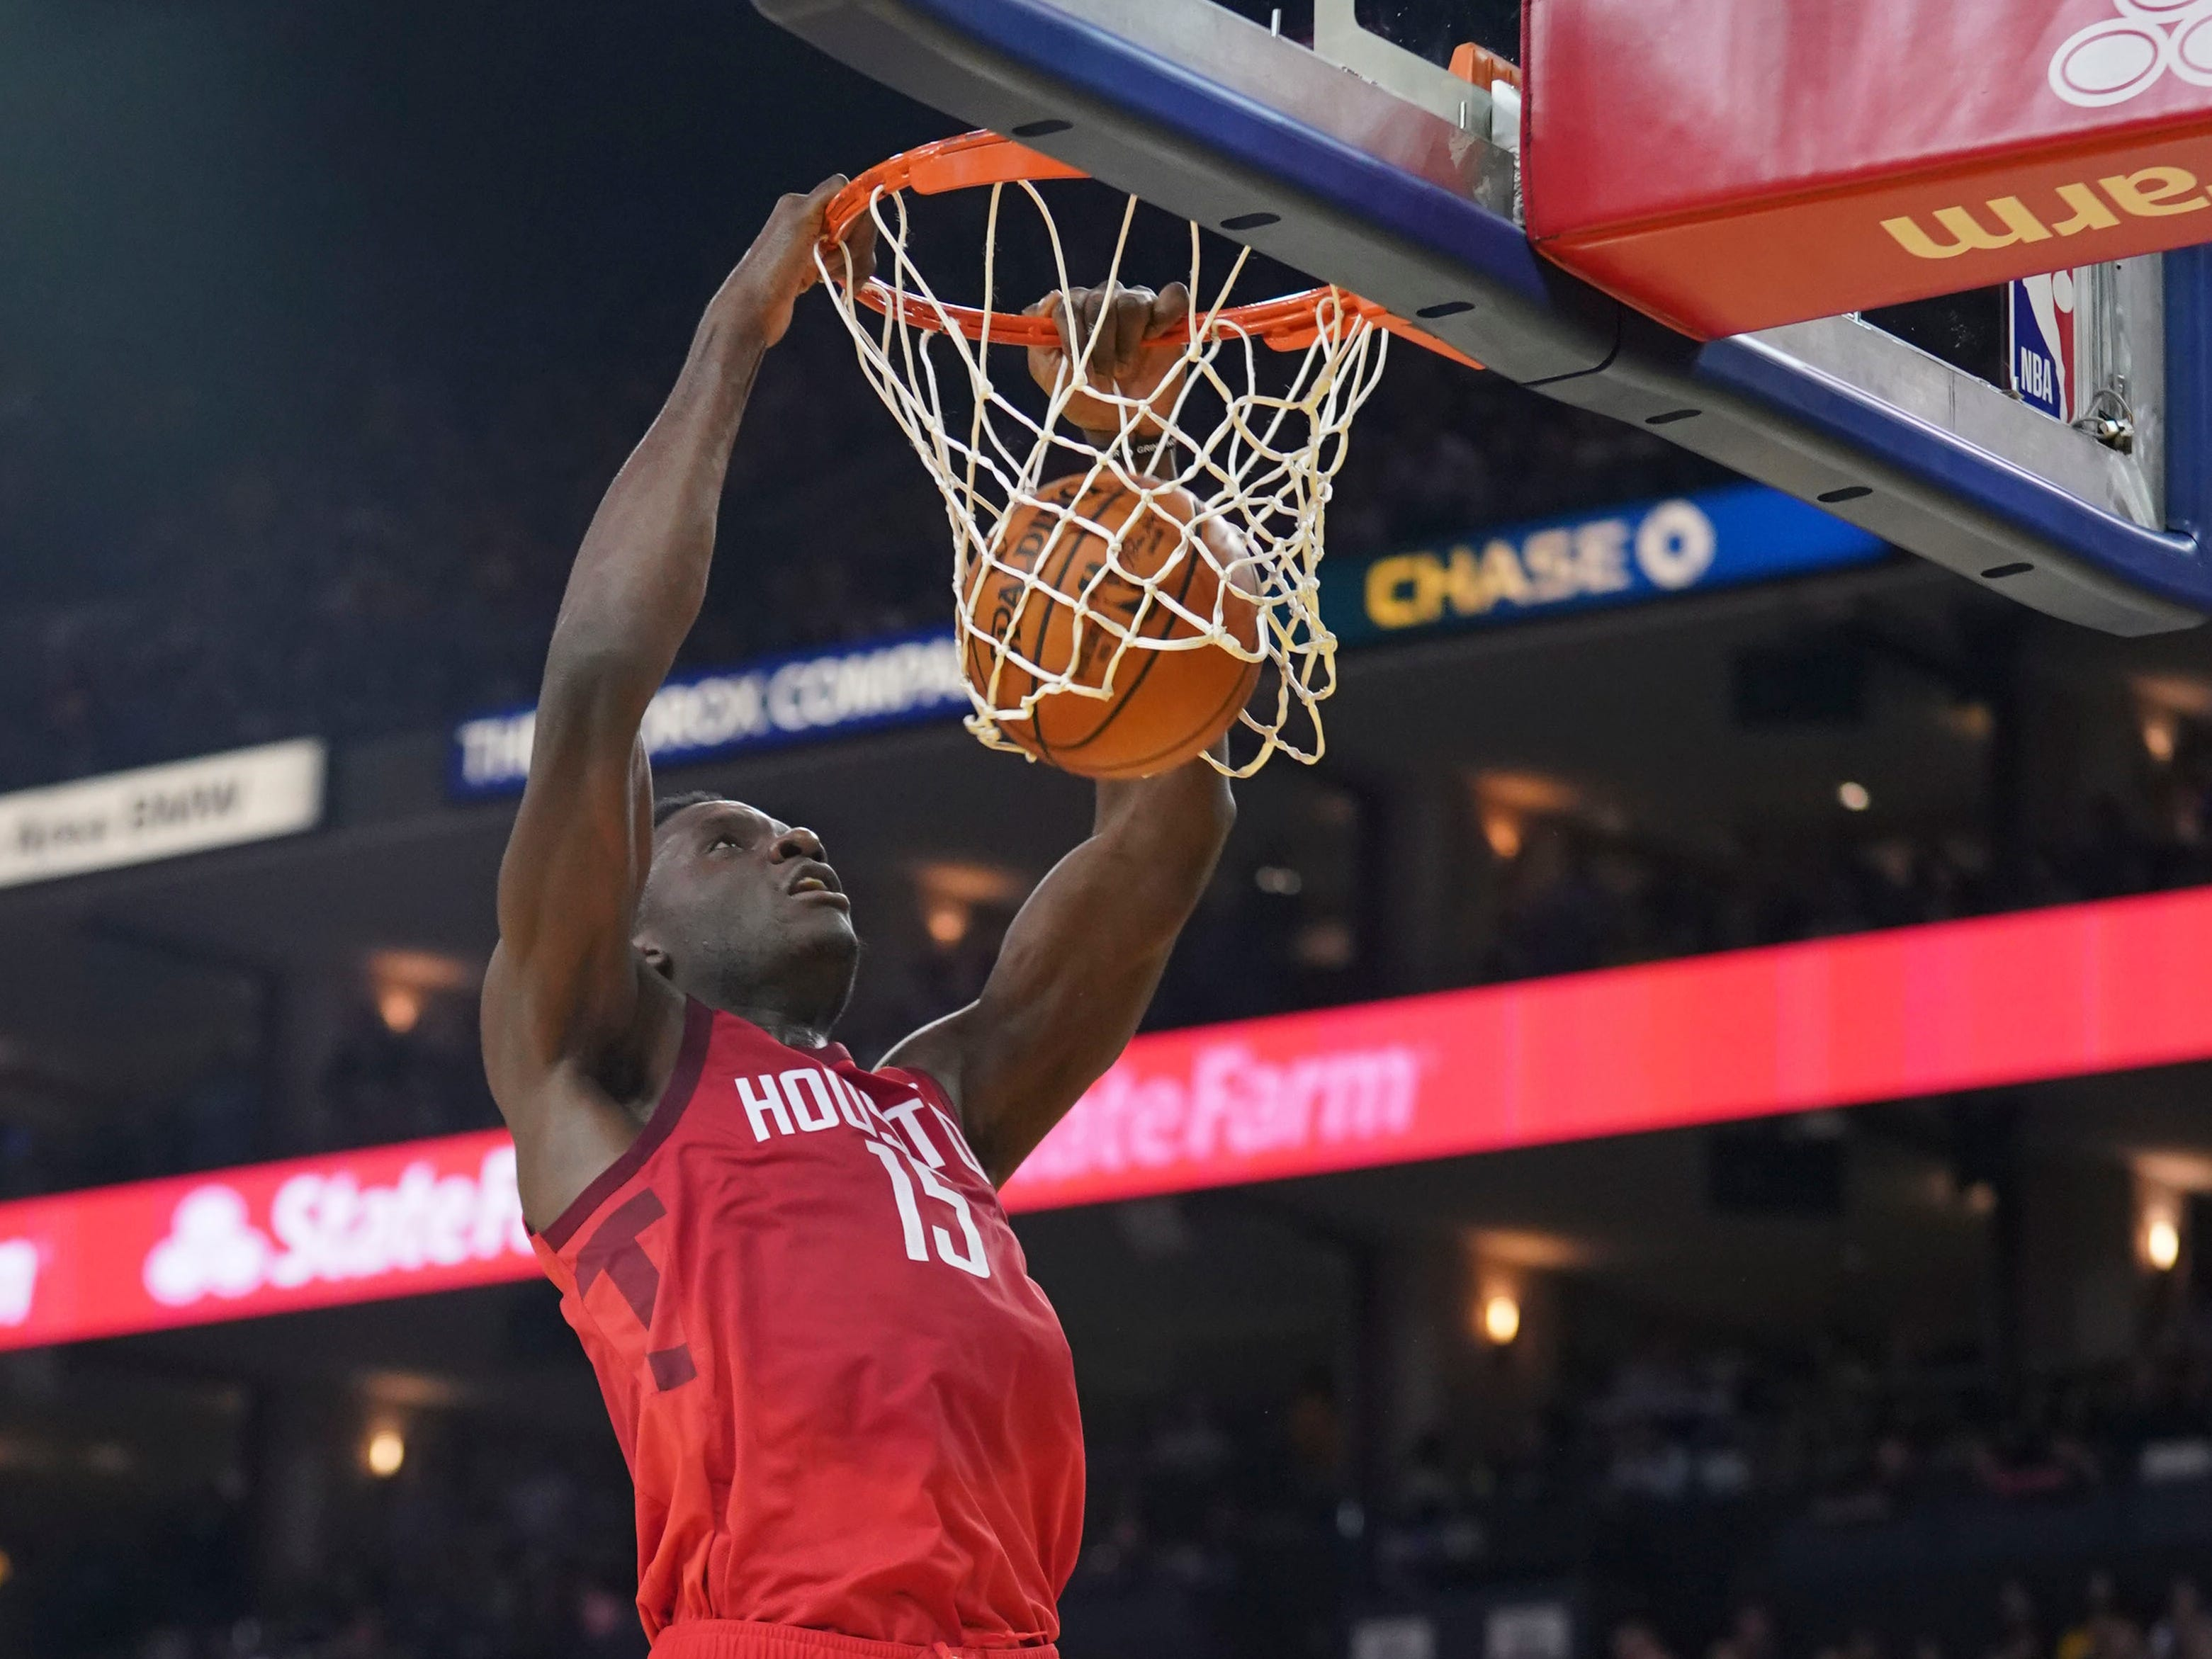 Jan. 3: Houston Rockets center Clint Capela dunks the basketball against the Golden State Warriors during the second quarter at Oracle Arena.